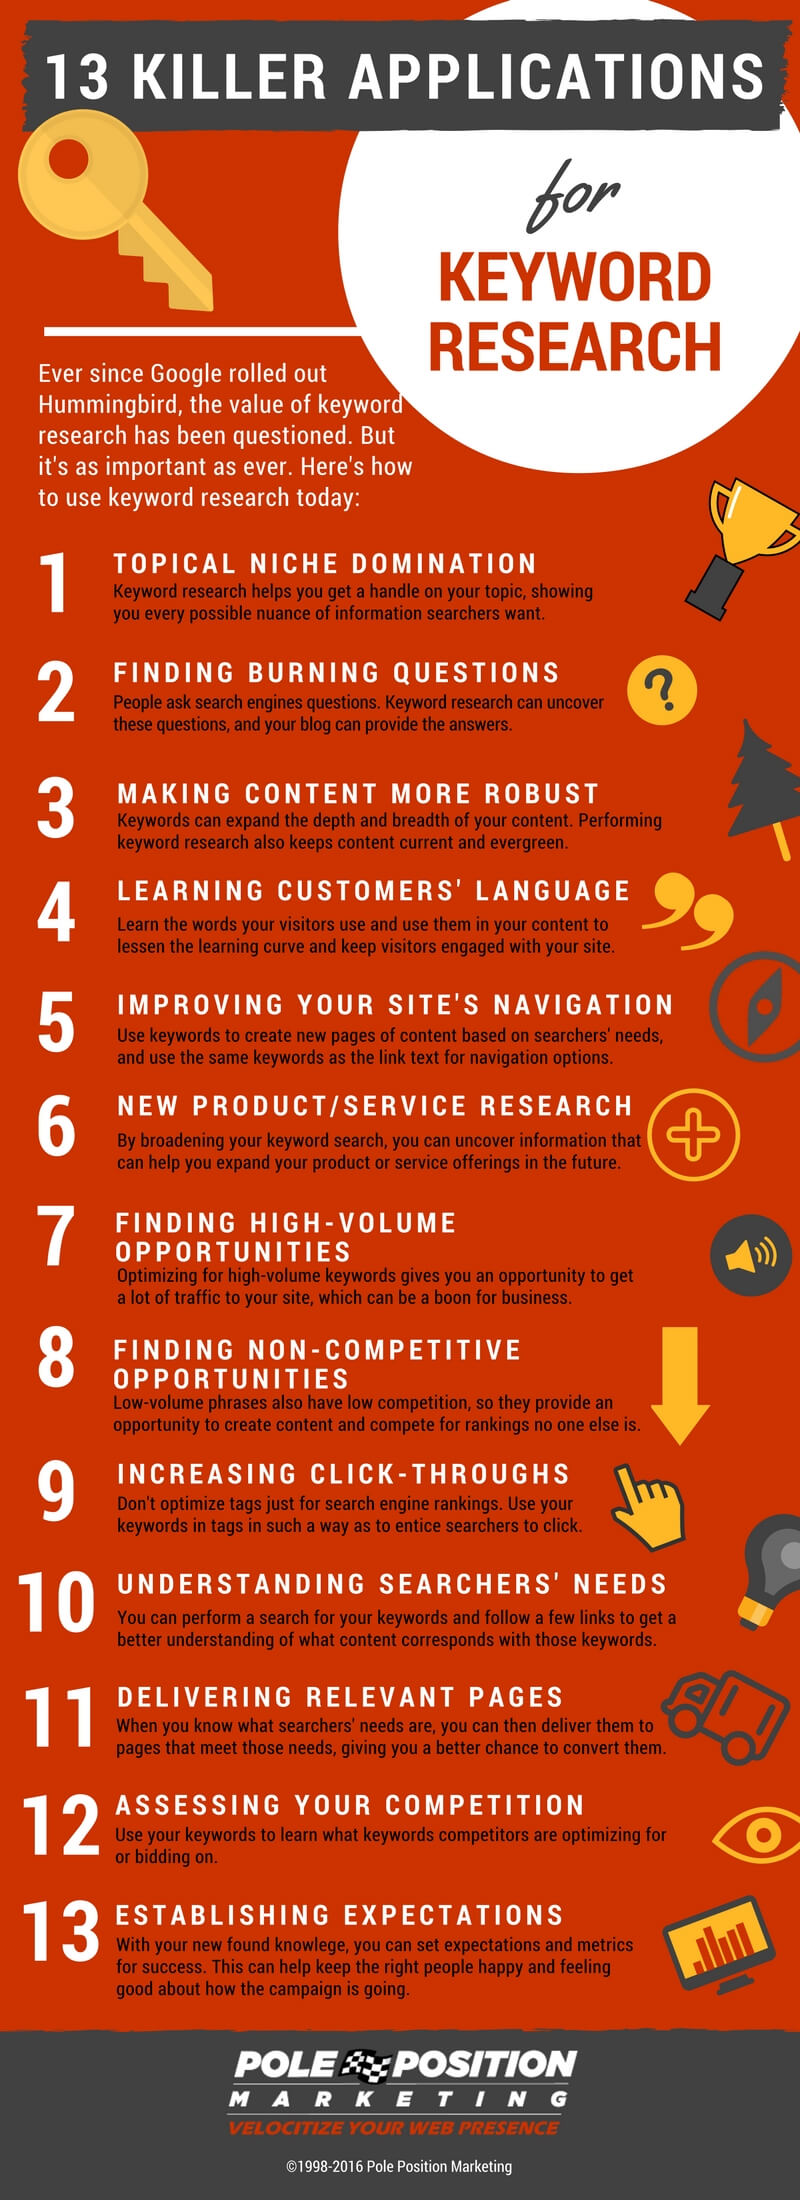 reasons-to-do-keyword-research-infographic